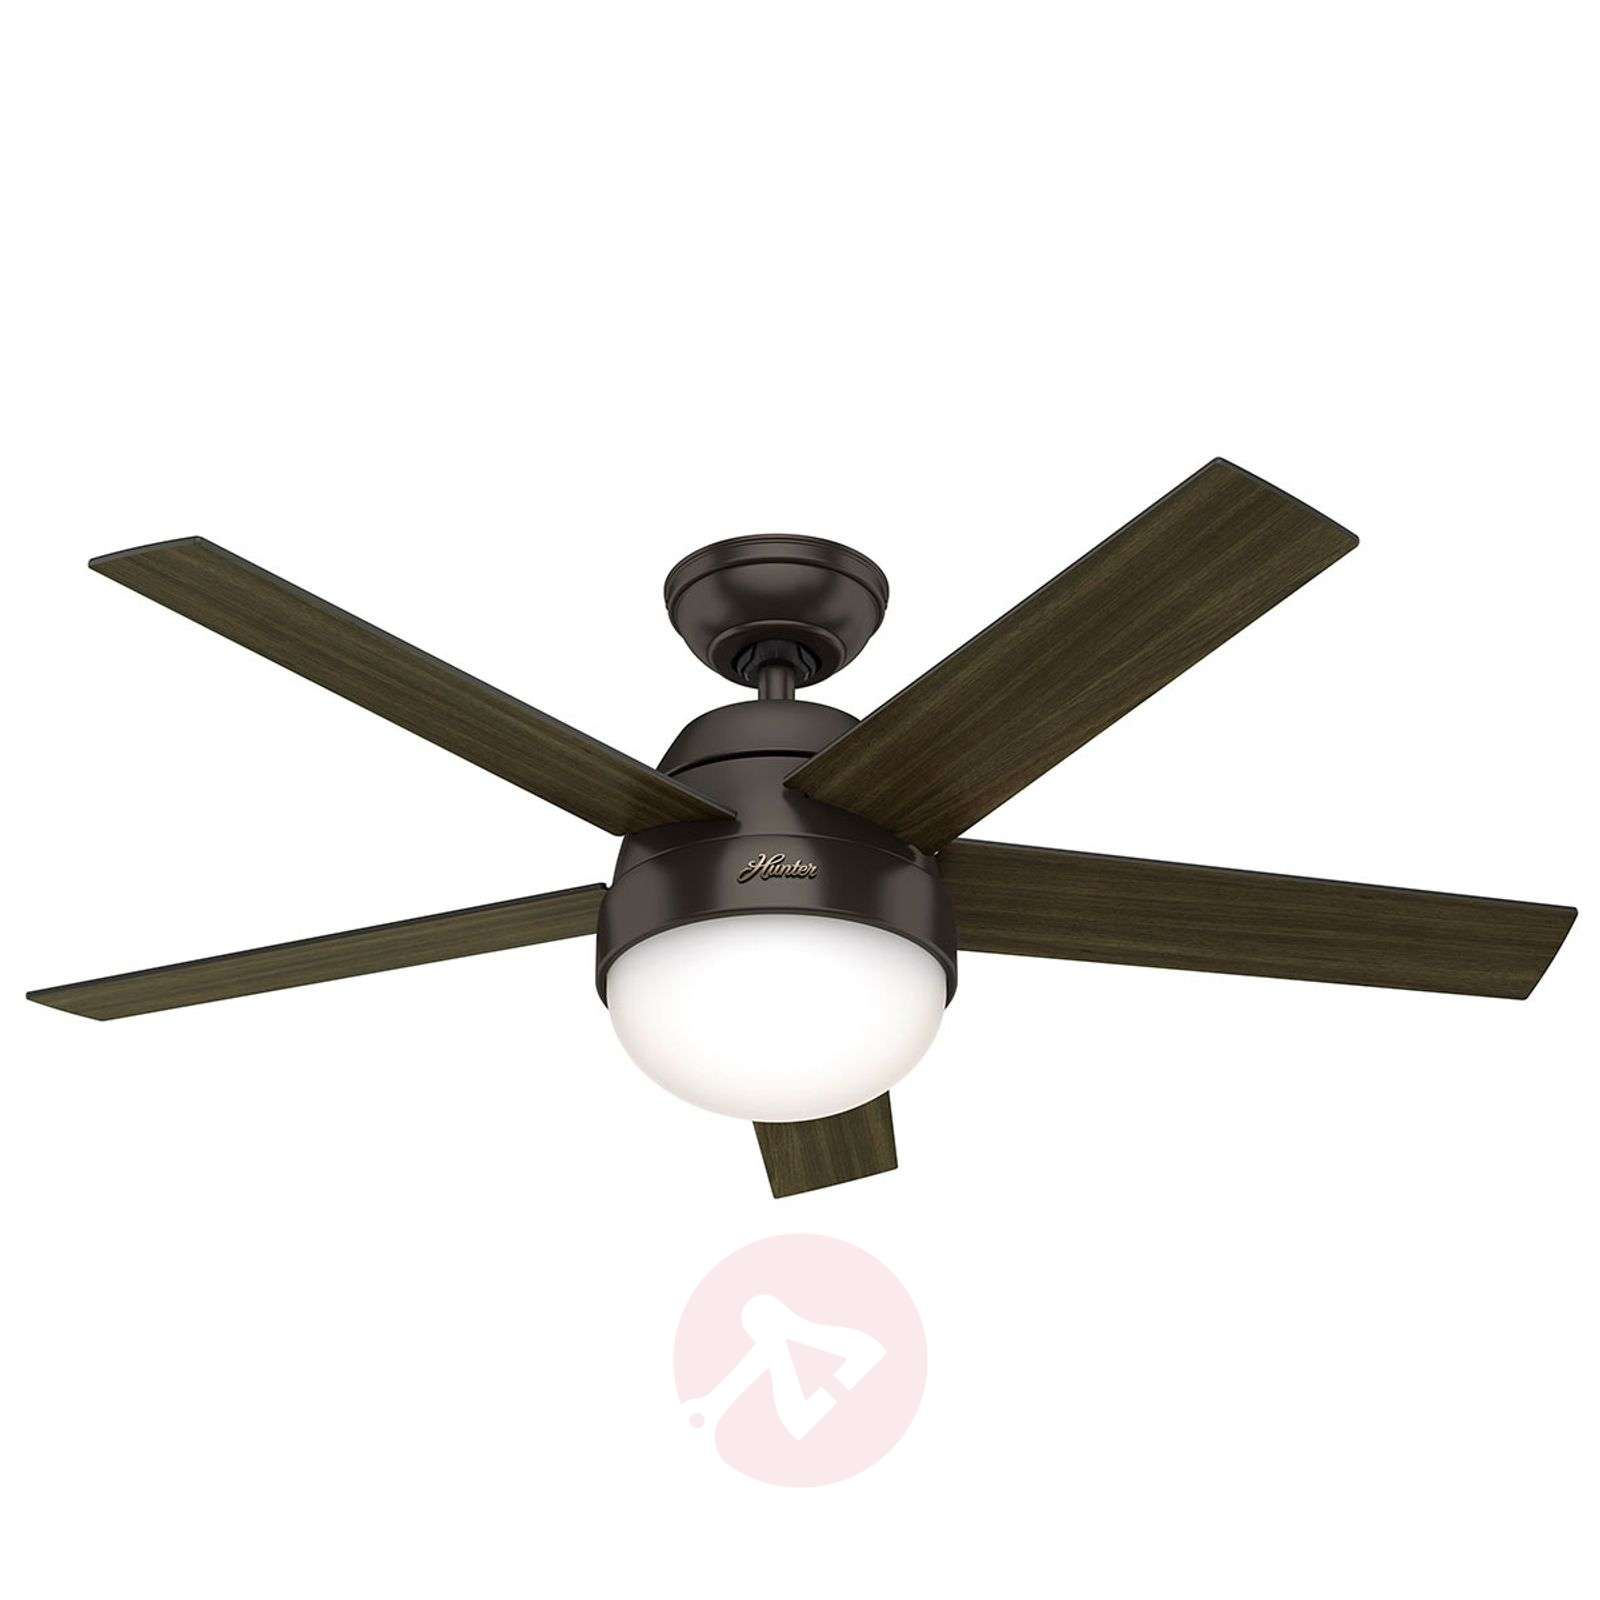 Hunter Stile ventilateur éclairage noyer/noyer-4545039-01